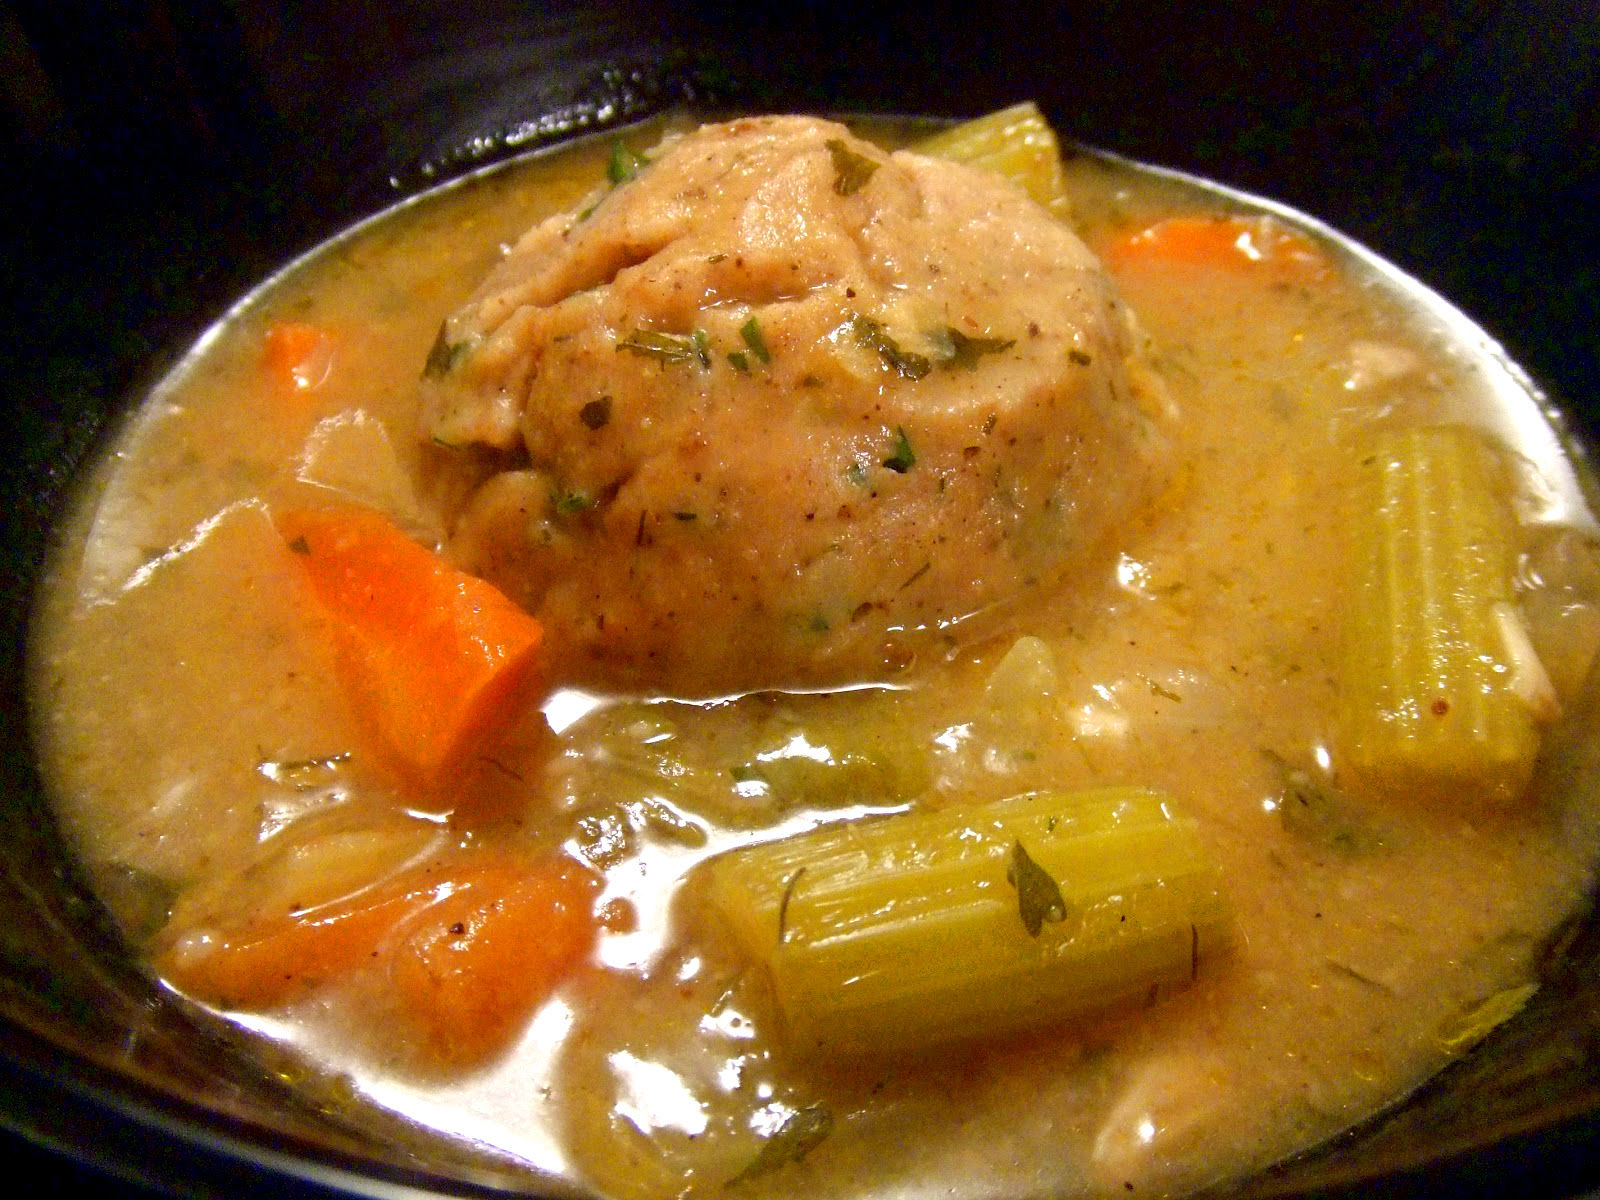 Bowl of Vegan Matzo Ball Soup